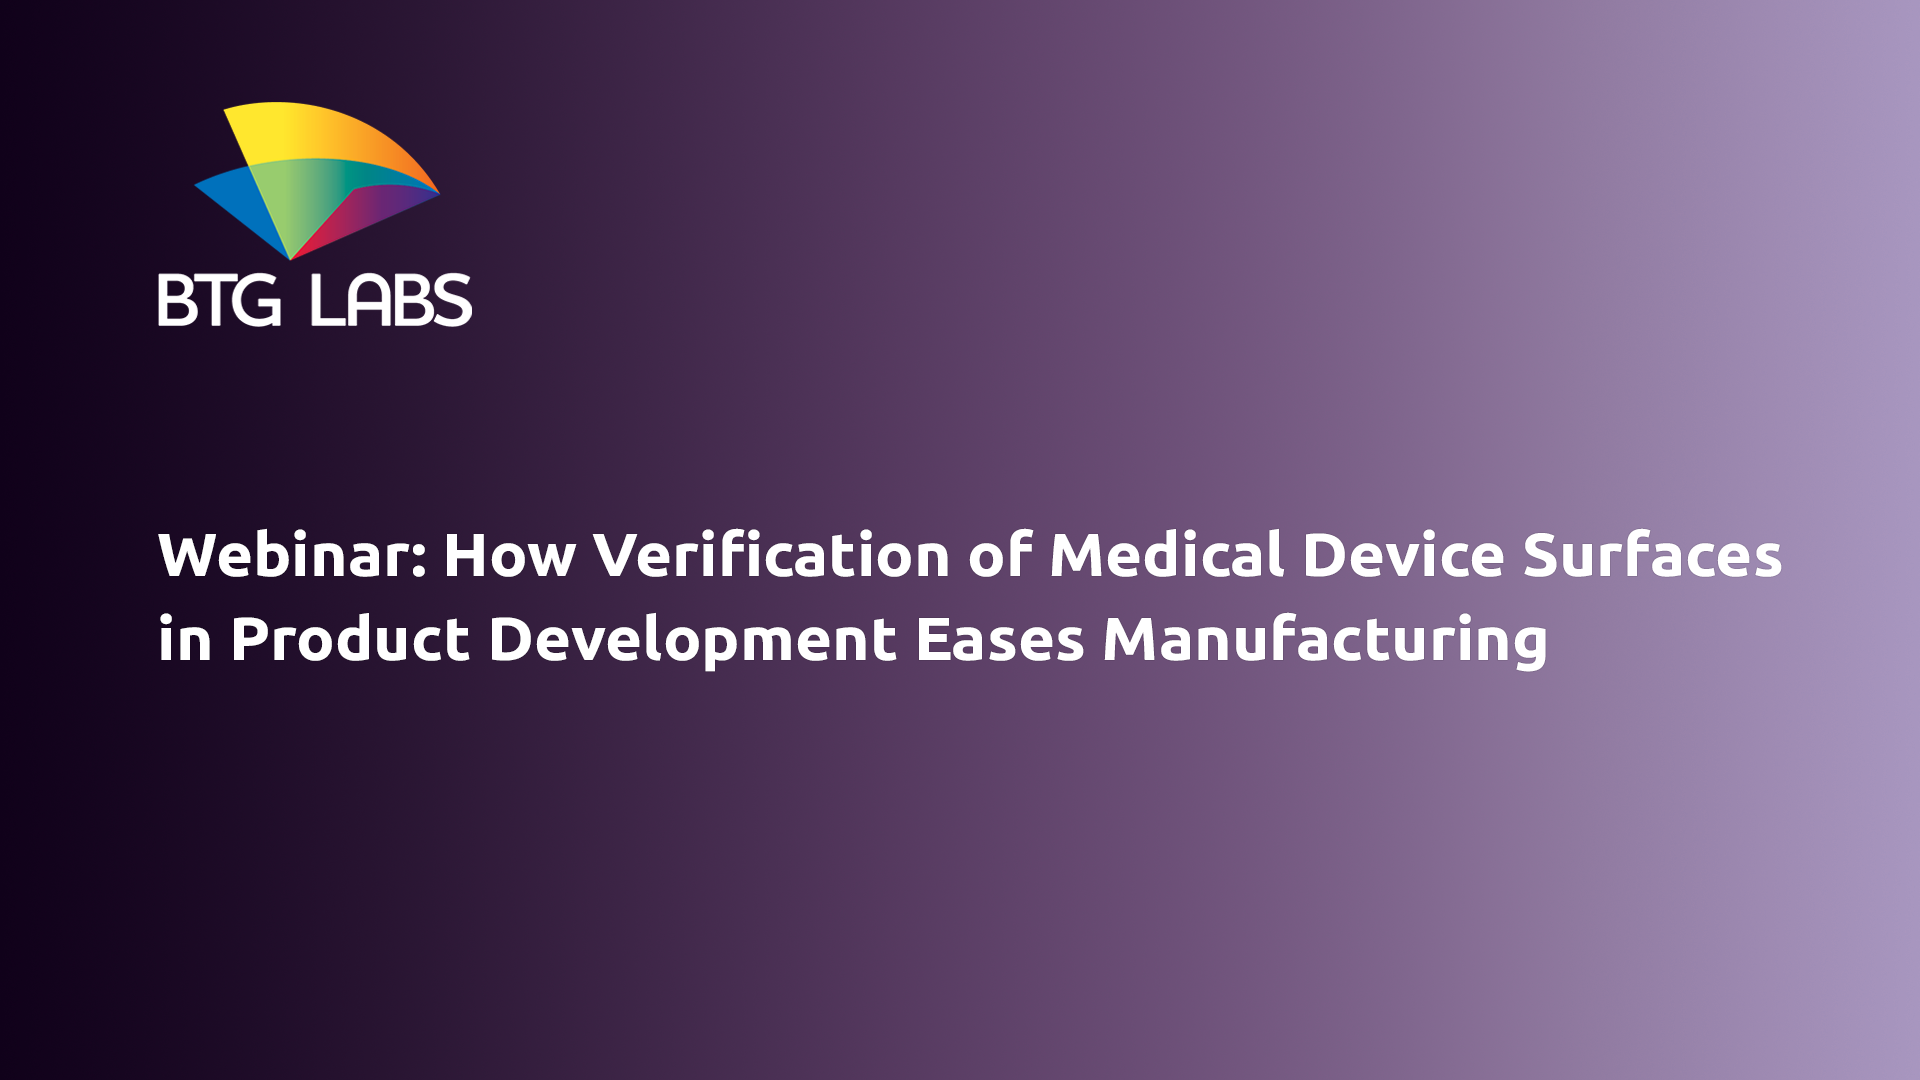 how-verification-of-medical-device-surfaces-in-product-development-eases-manufacturing-webinar